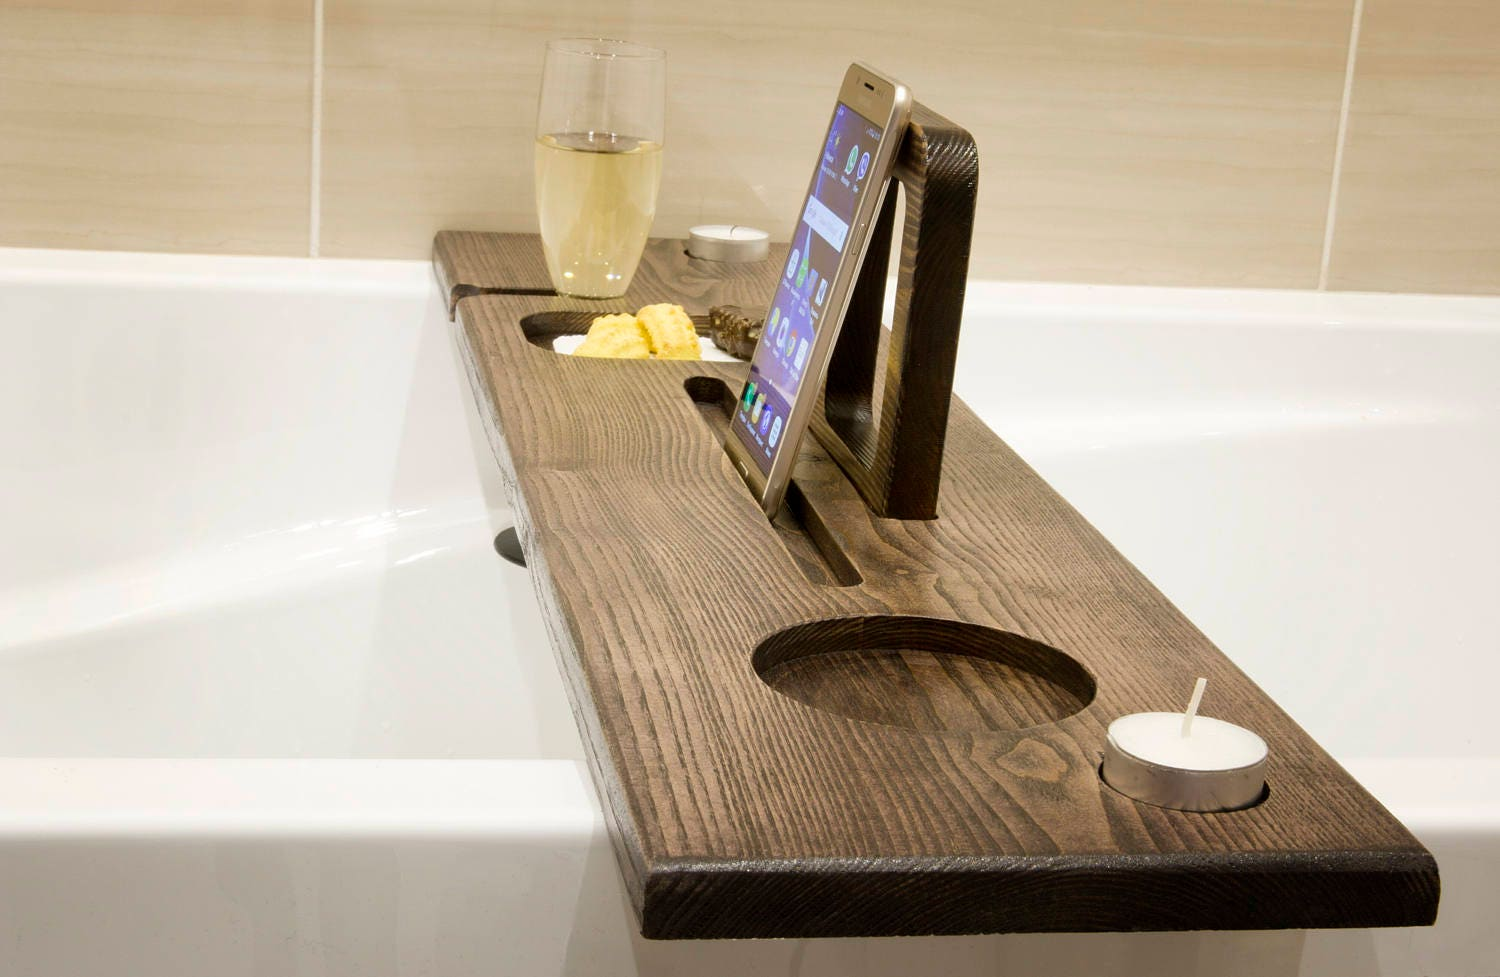 bath caddy bath ipad stand bath drinks holder birthday. Black Bedroom Furniture Sets. Home Design Ideas